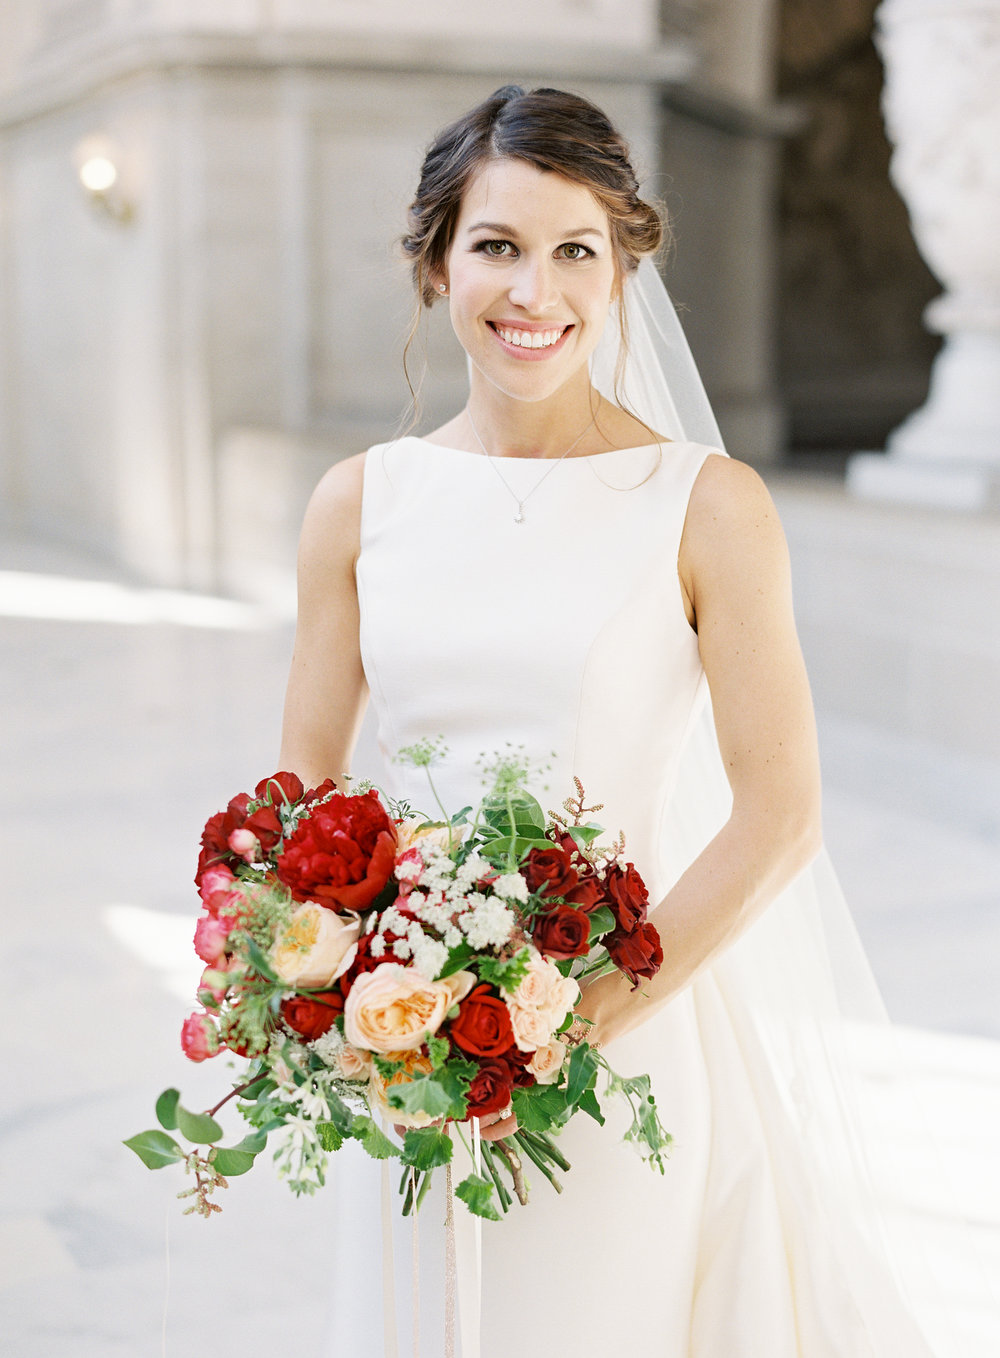 Meghan Mehan Photography - California Wedding Photographer | San Francisco City Hall Wedding 043.jpg